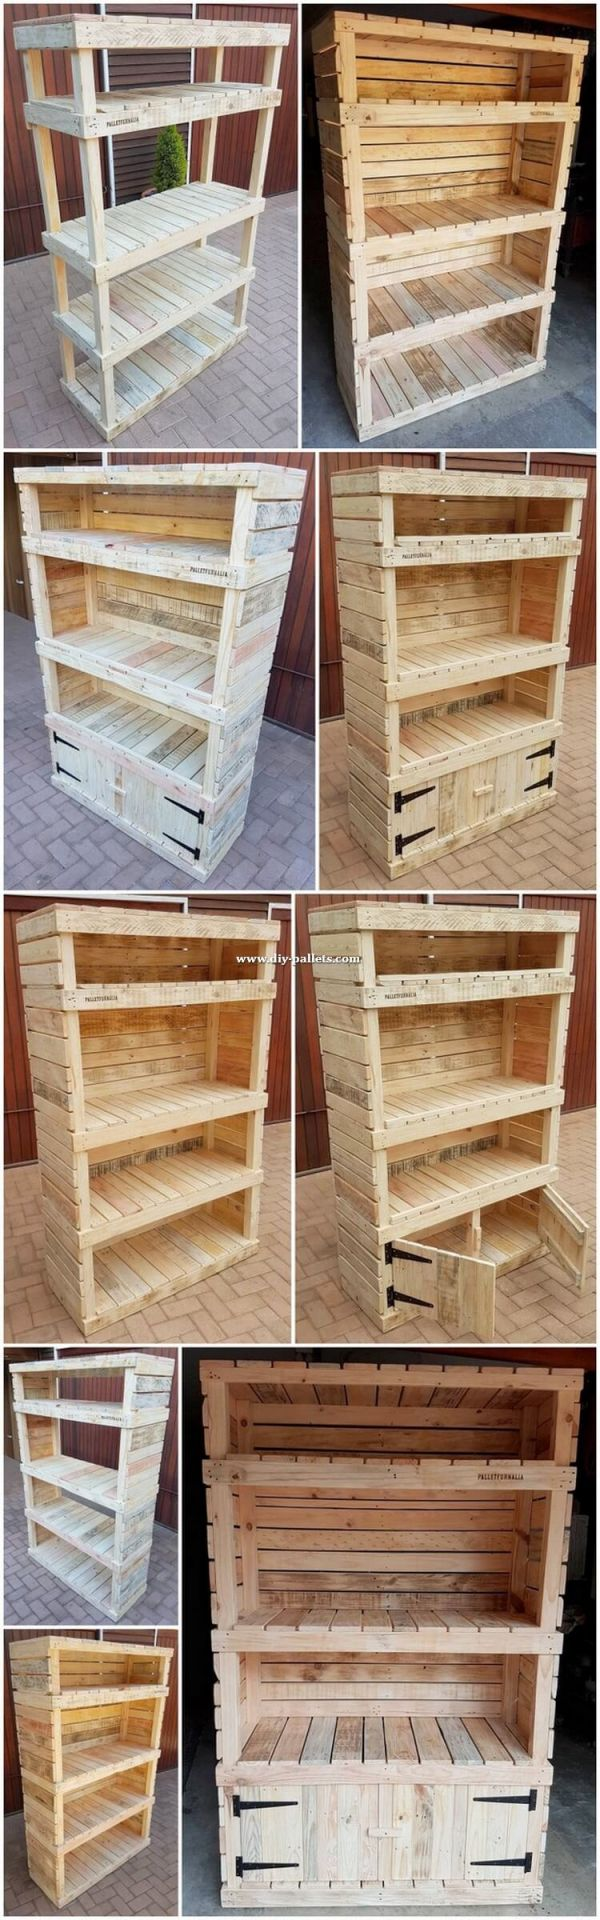 Adorable pallet furniture plans step by step